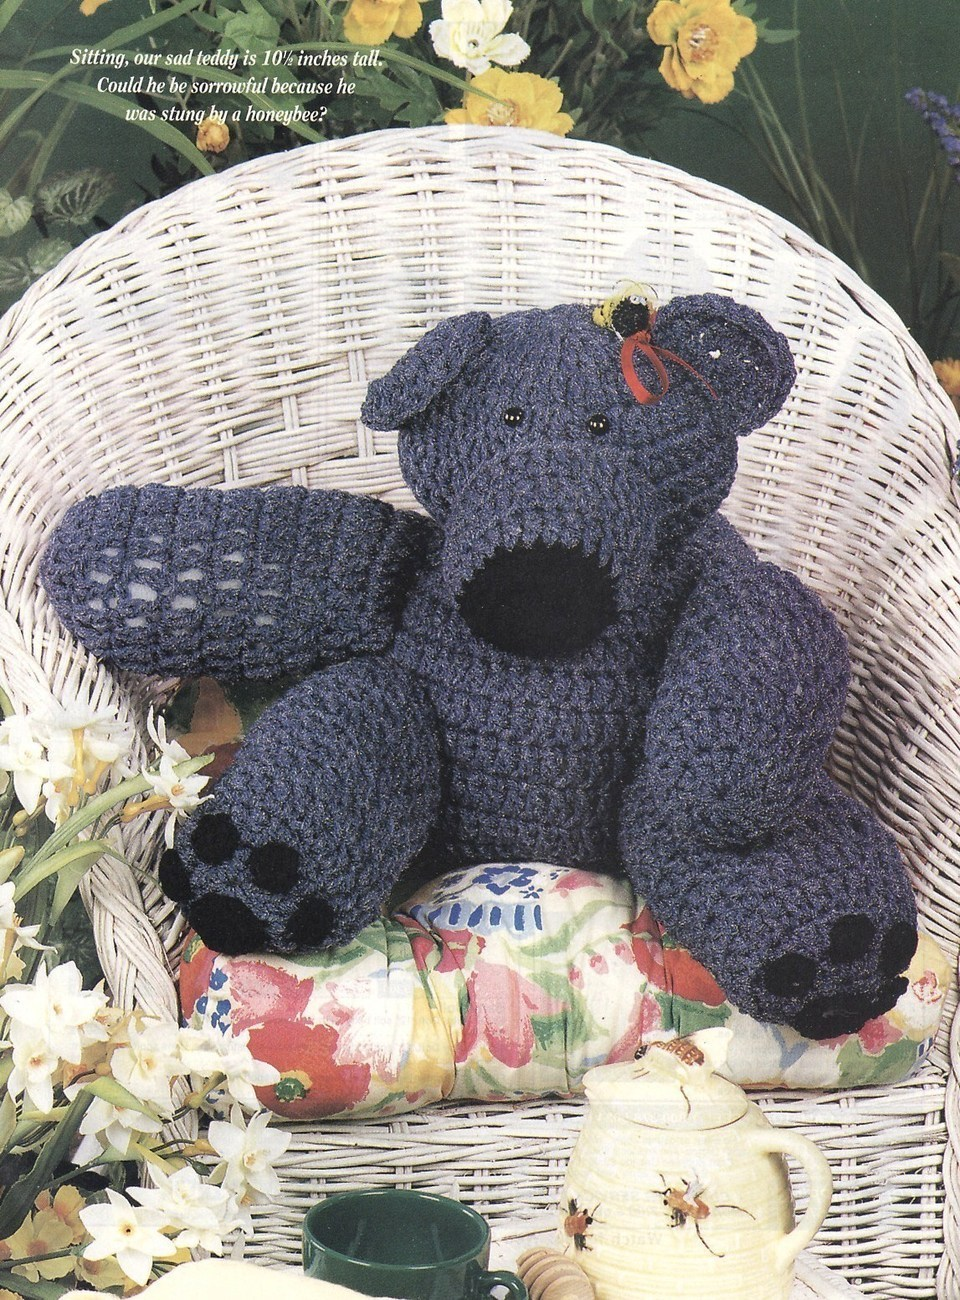 Free Crochet Pattern: Teddy Bear Overalls, Shirt and Cap